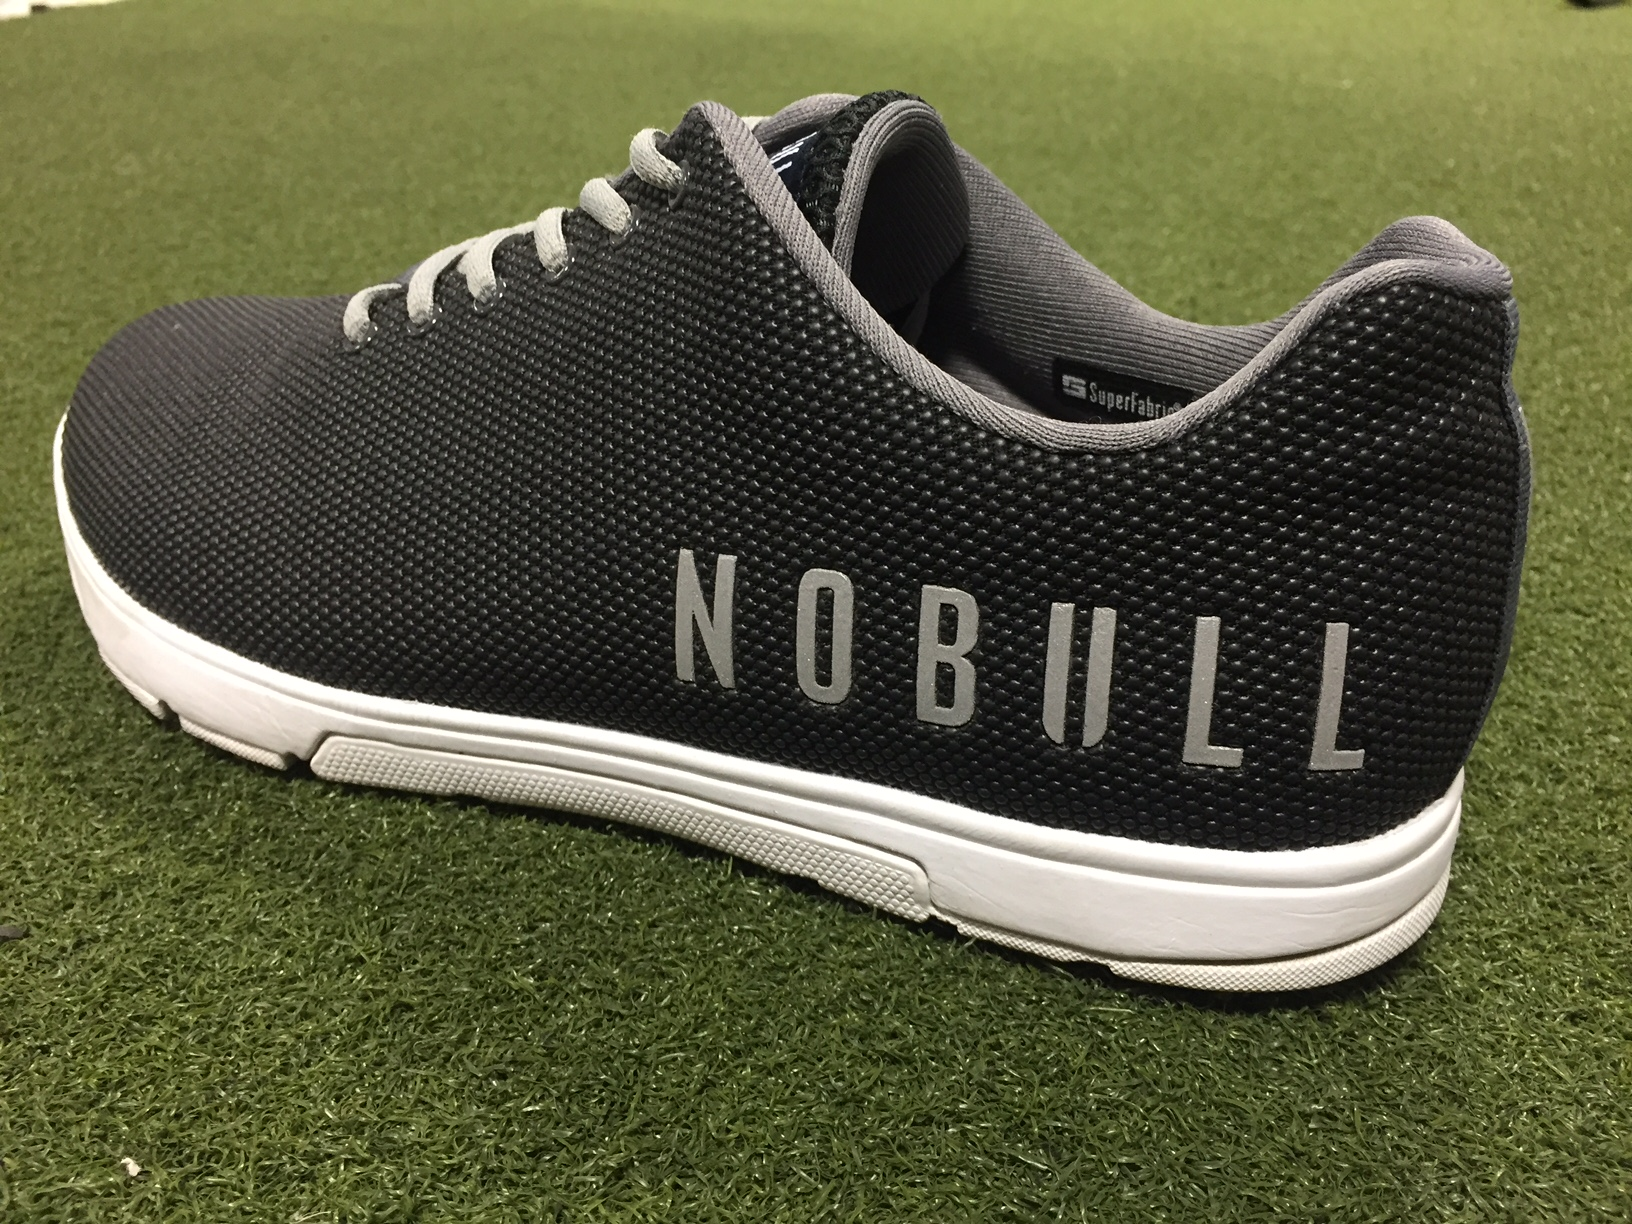 NOBULL Trainer Review | OutdoorGearLab